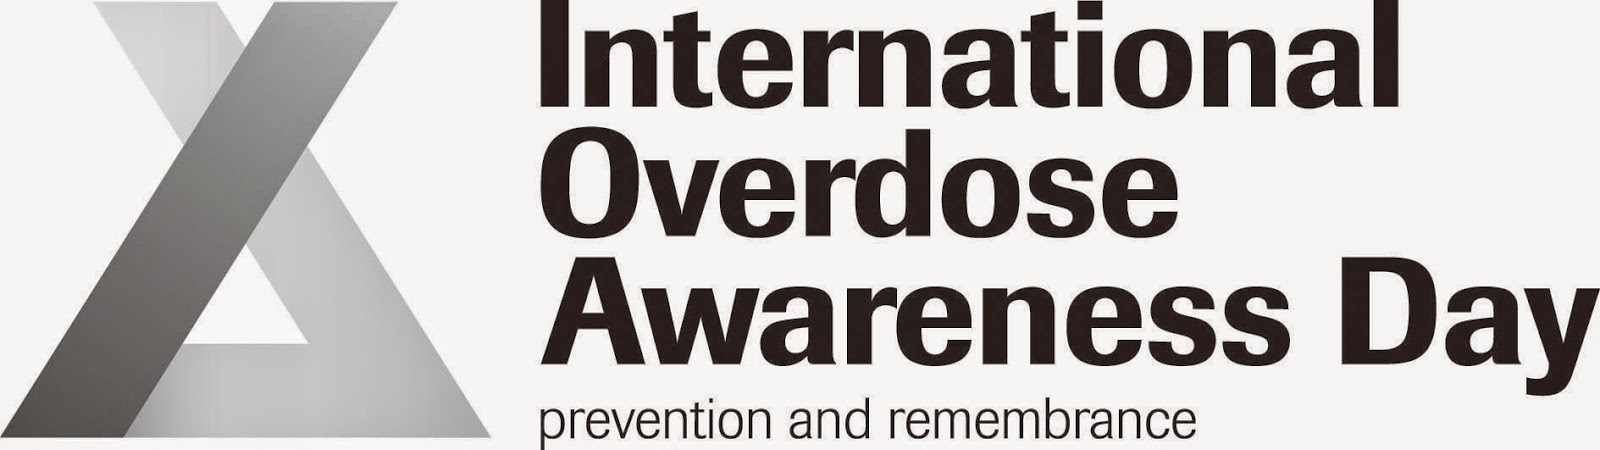 International Overdose Awareness Day - prevention and remembrance